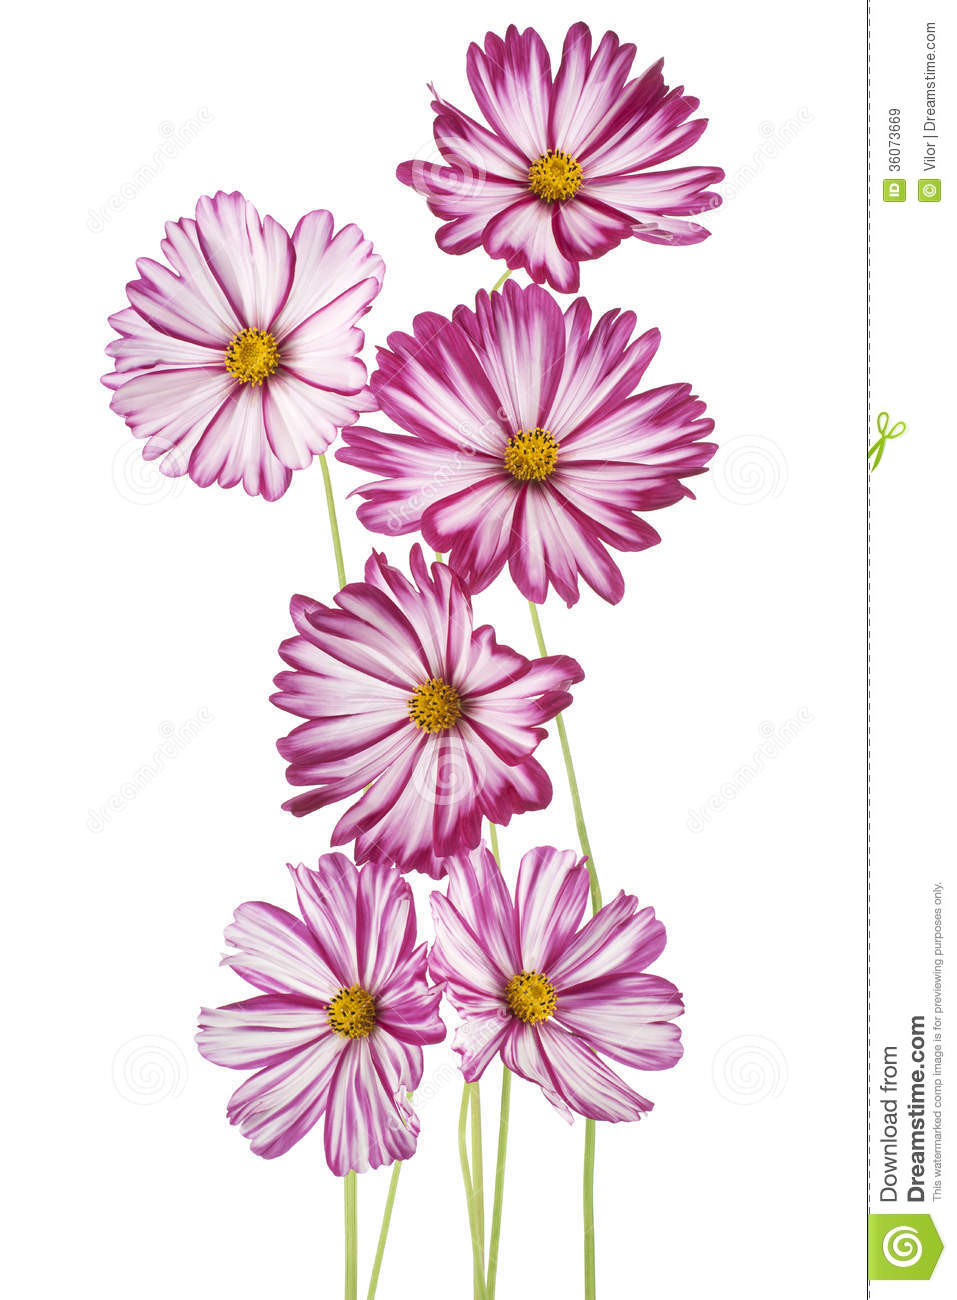 Cosmos Royalty Free Stock Images.